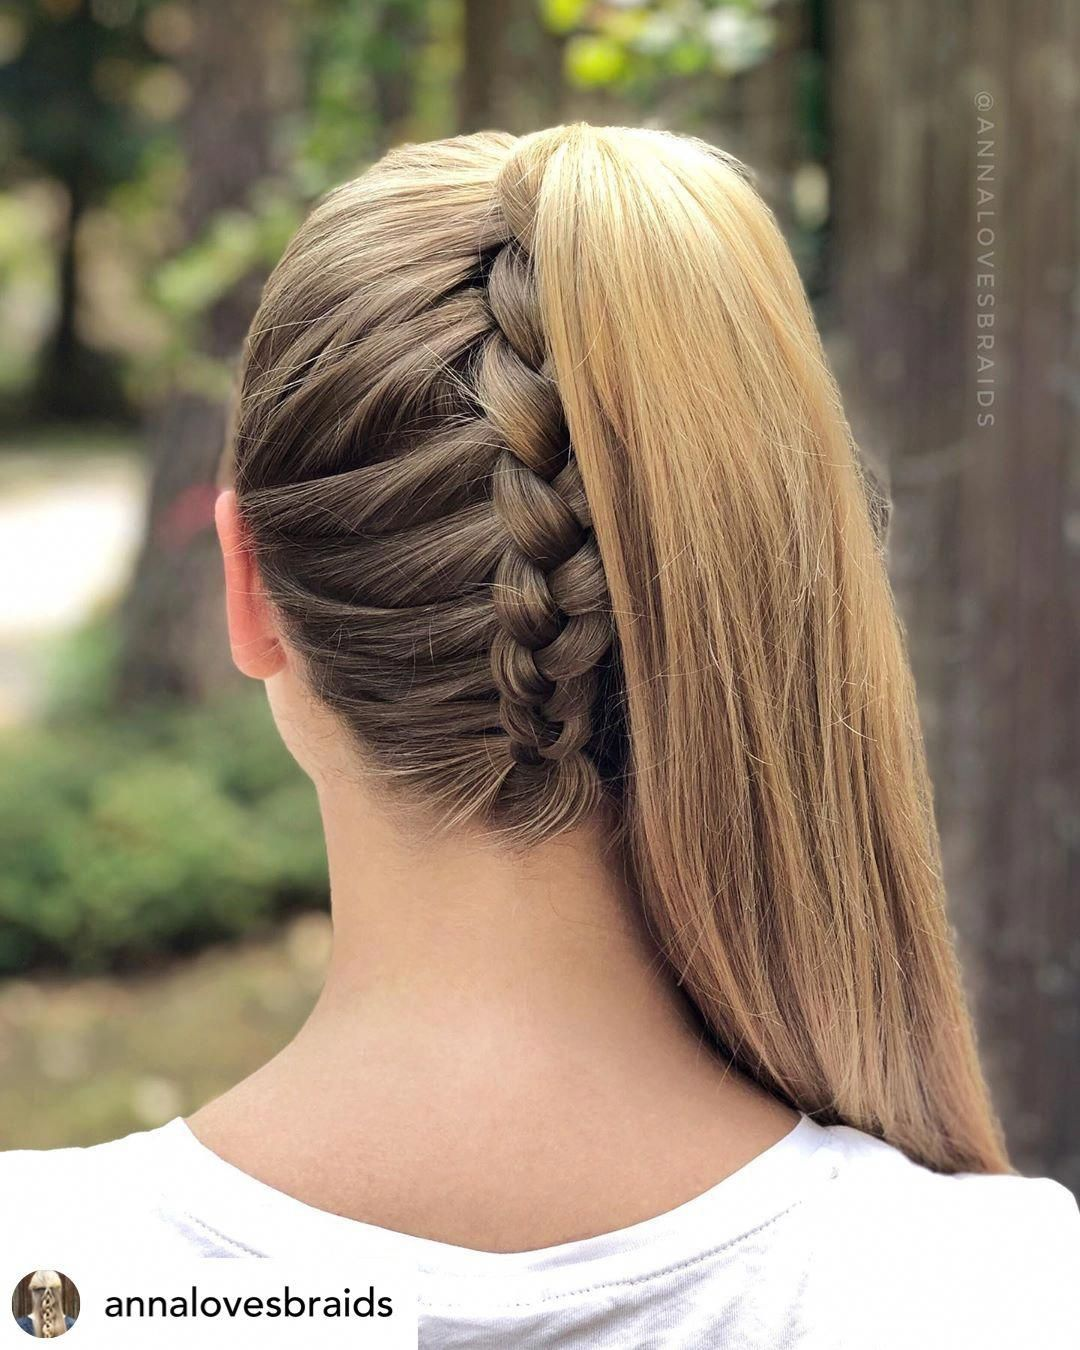 Do You Want The Perfect New Back To School Hairstyle Upside Down Braided P Cute Hairstyles For Teens Medium Length Hair Styles Cute Hairstyles For Medium Hair